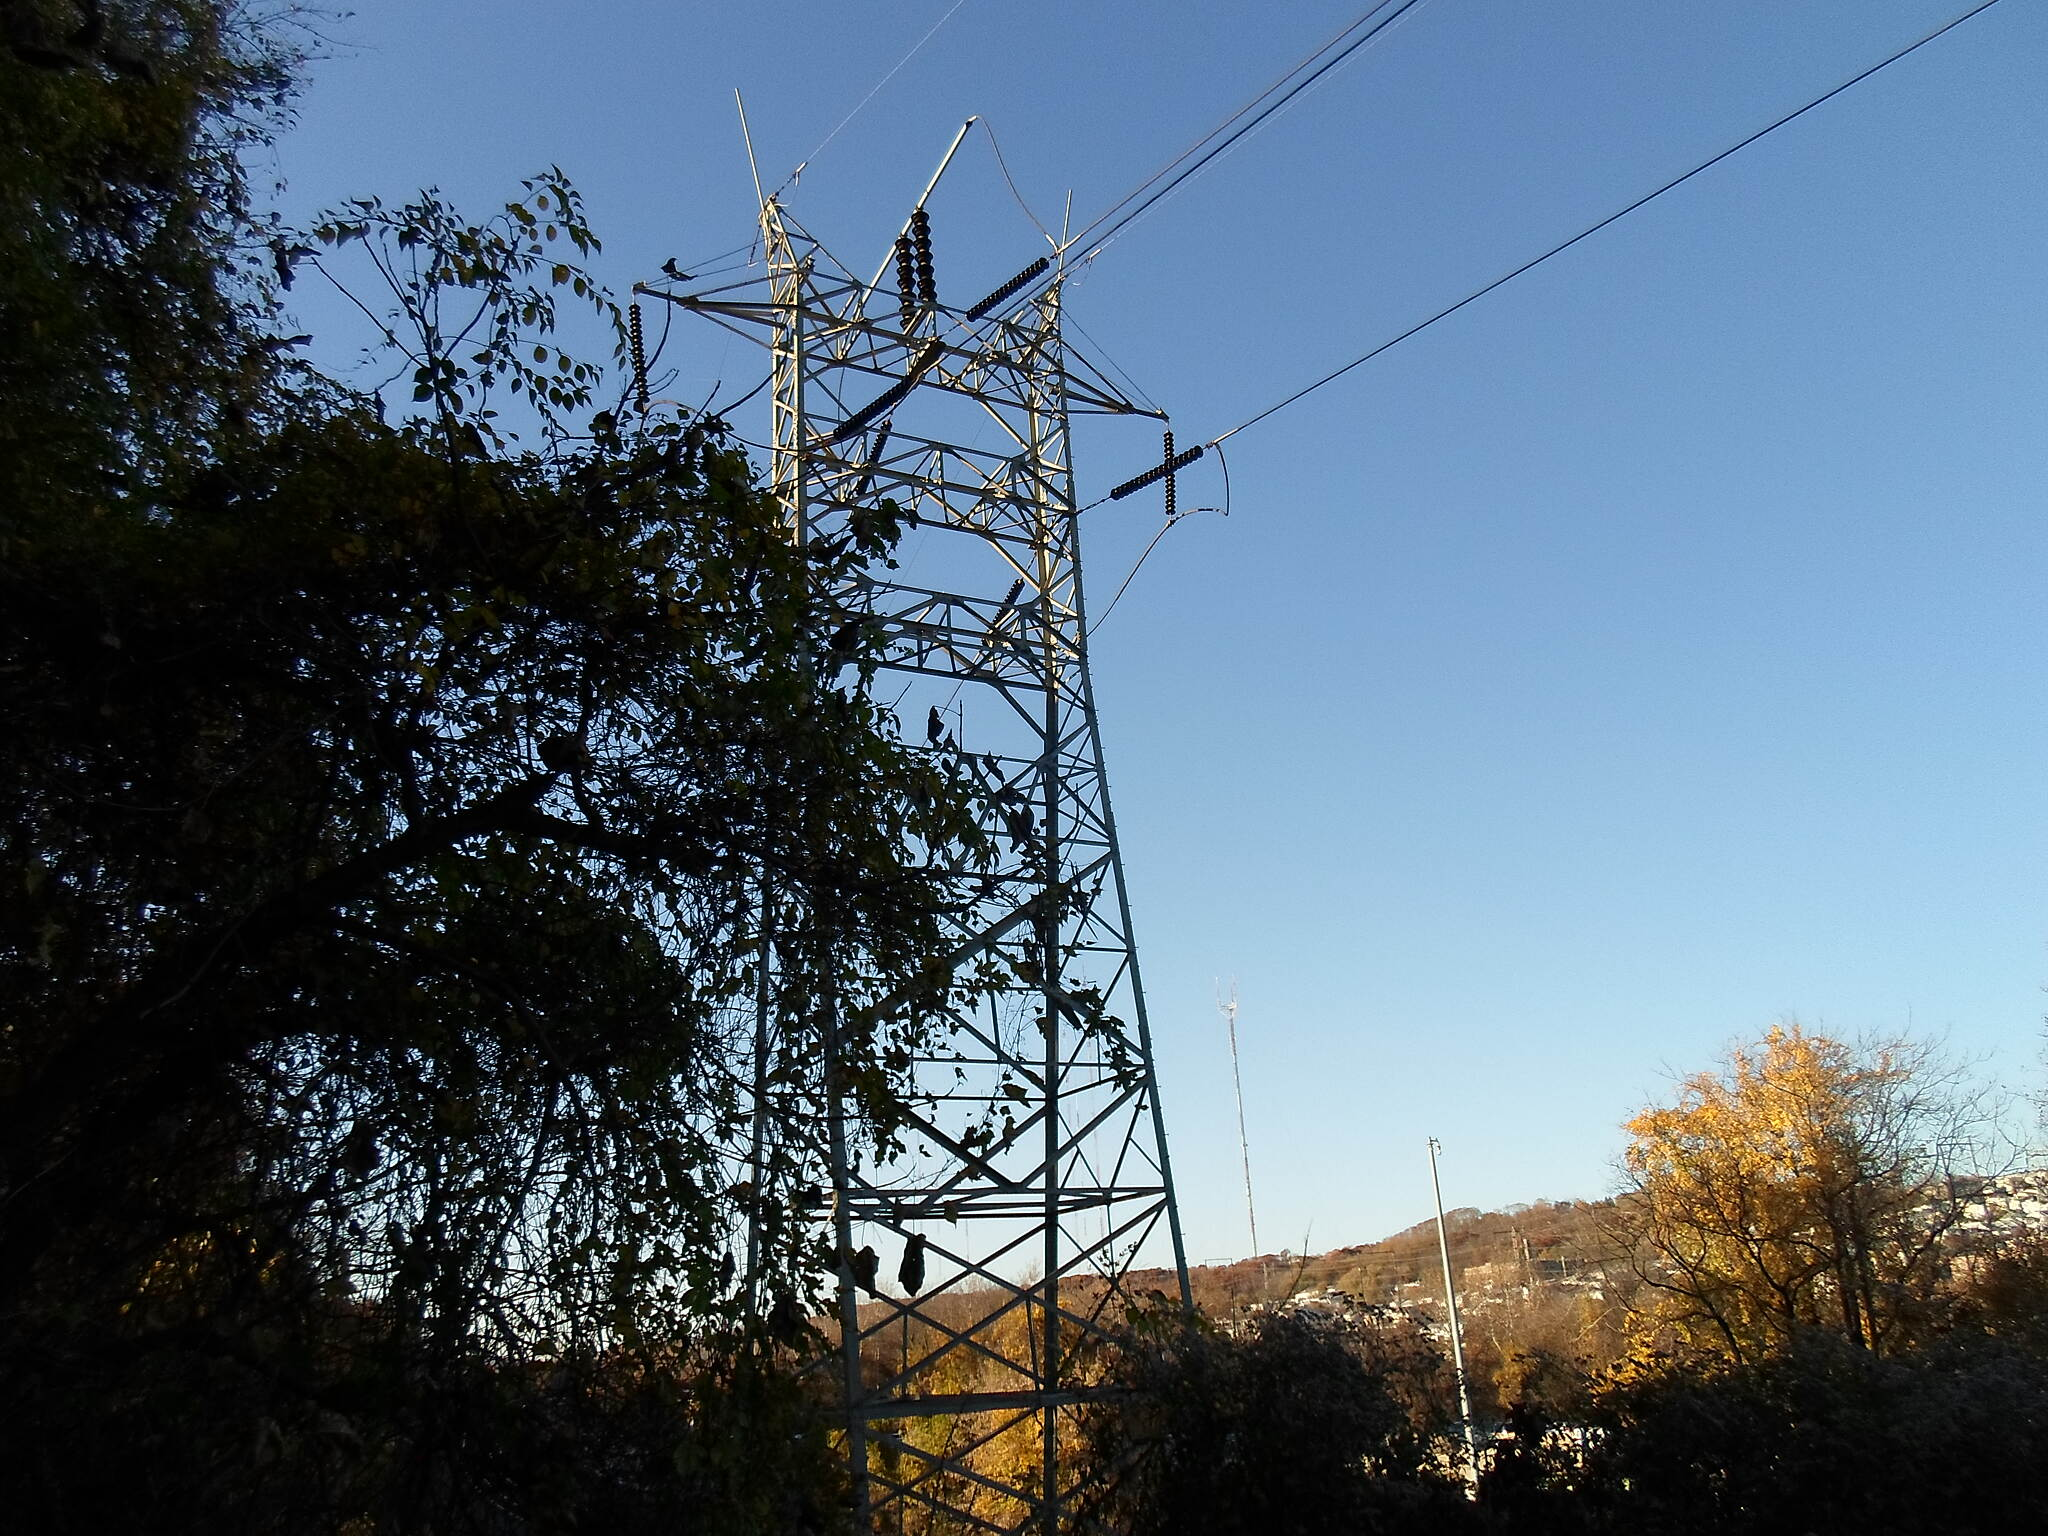 Cynwyd Heritage Trail Cynwyd Heritage Trail Transmission lines tower high above the trail near the Manayunk Trestle. Taken Nov. 2015.